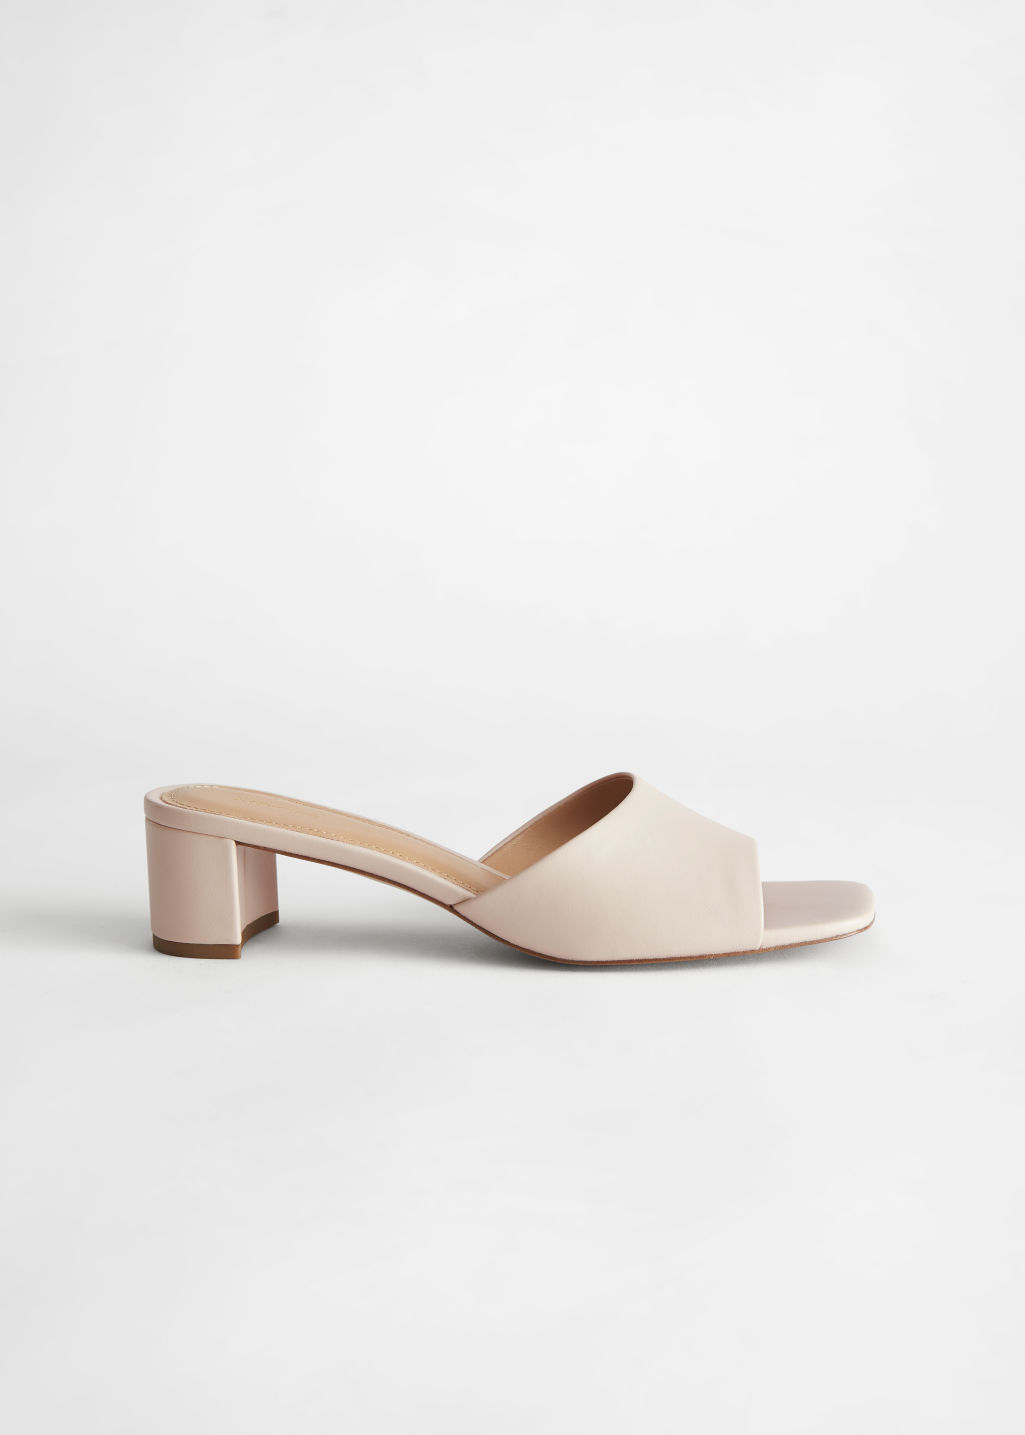 StillLife Side Image of Stories Heeled Leather Square Toe Sandal in White